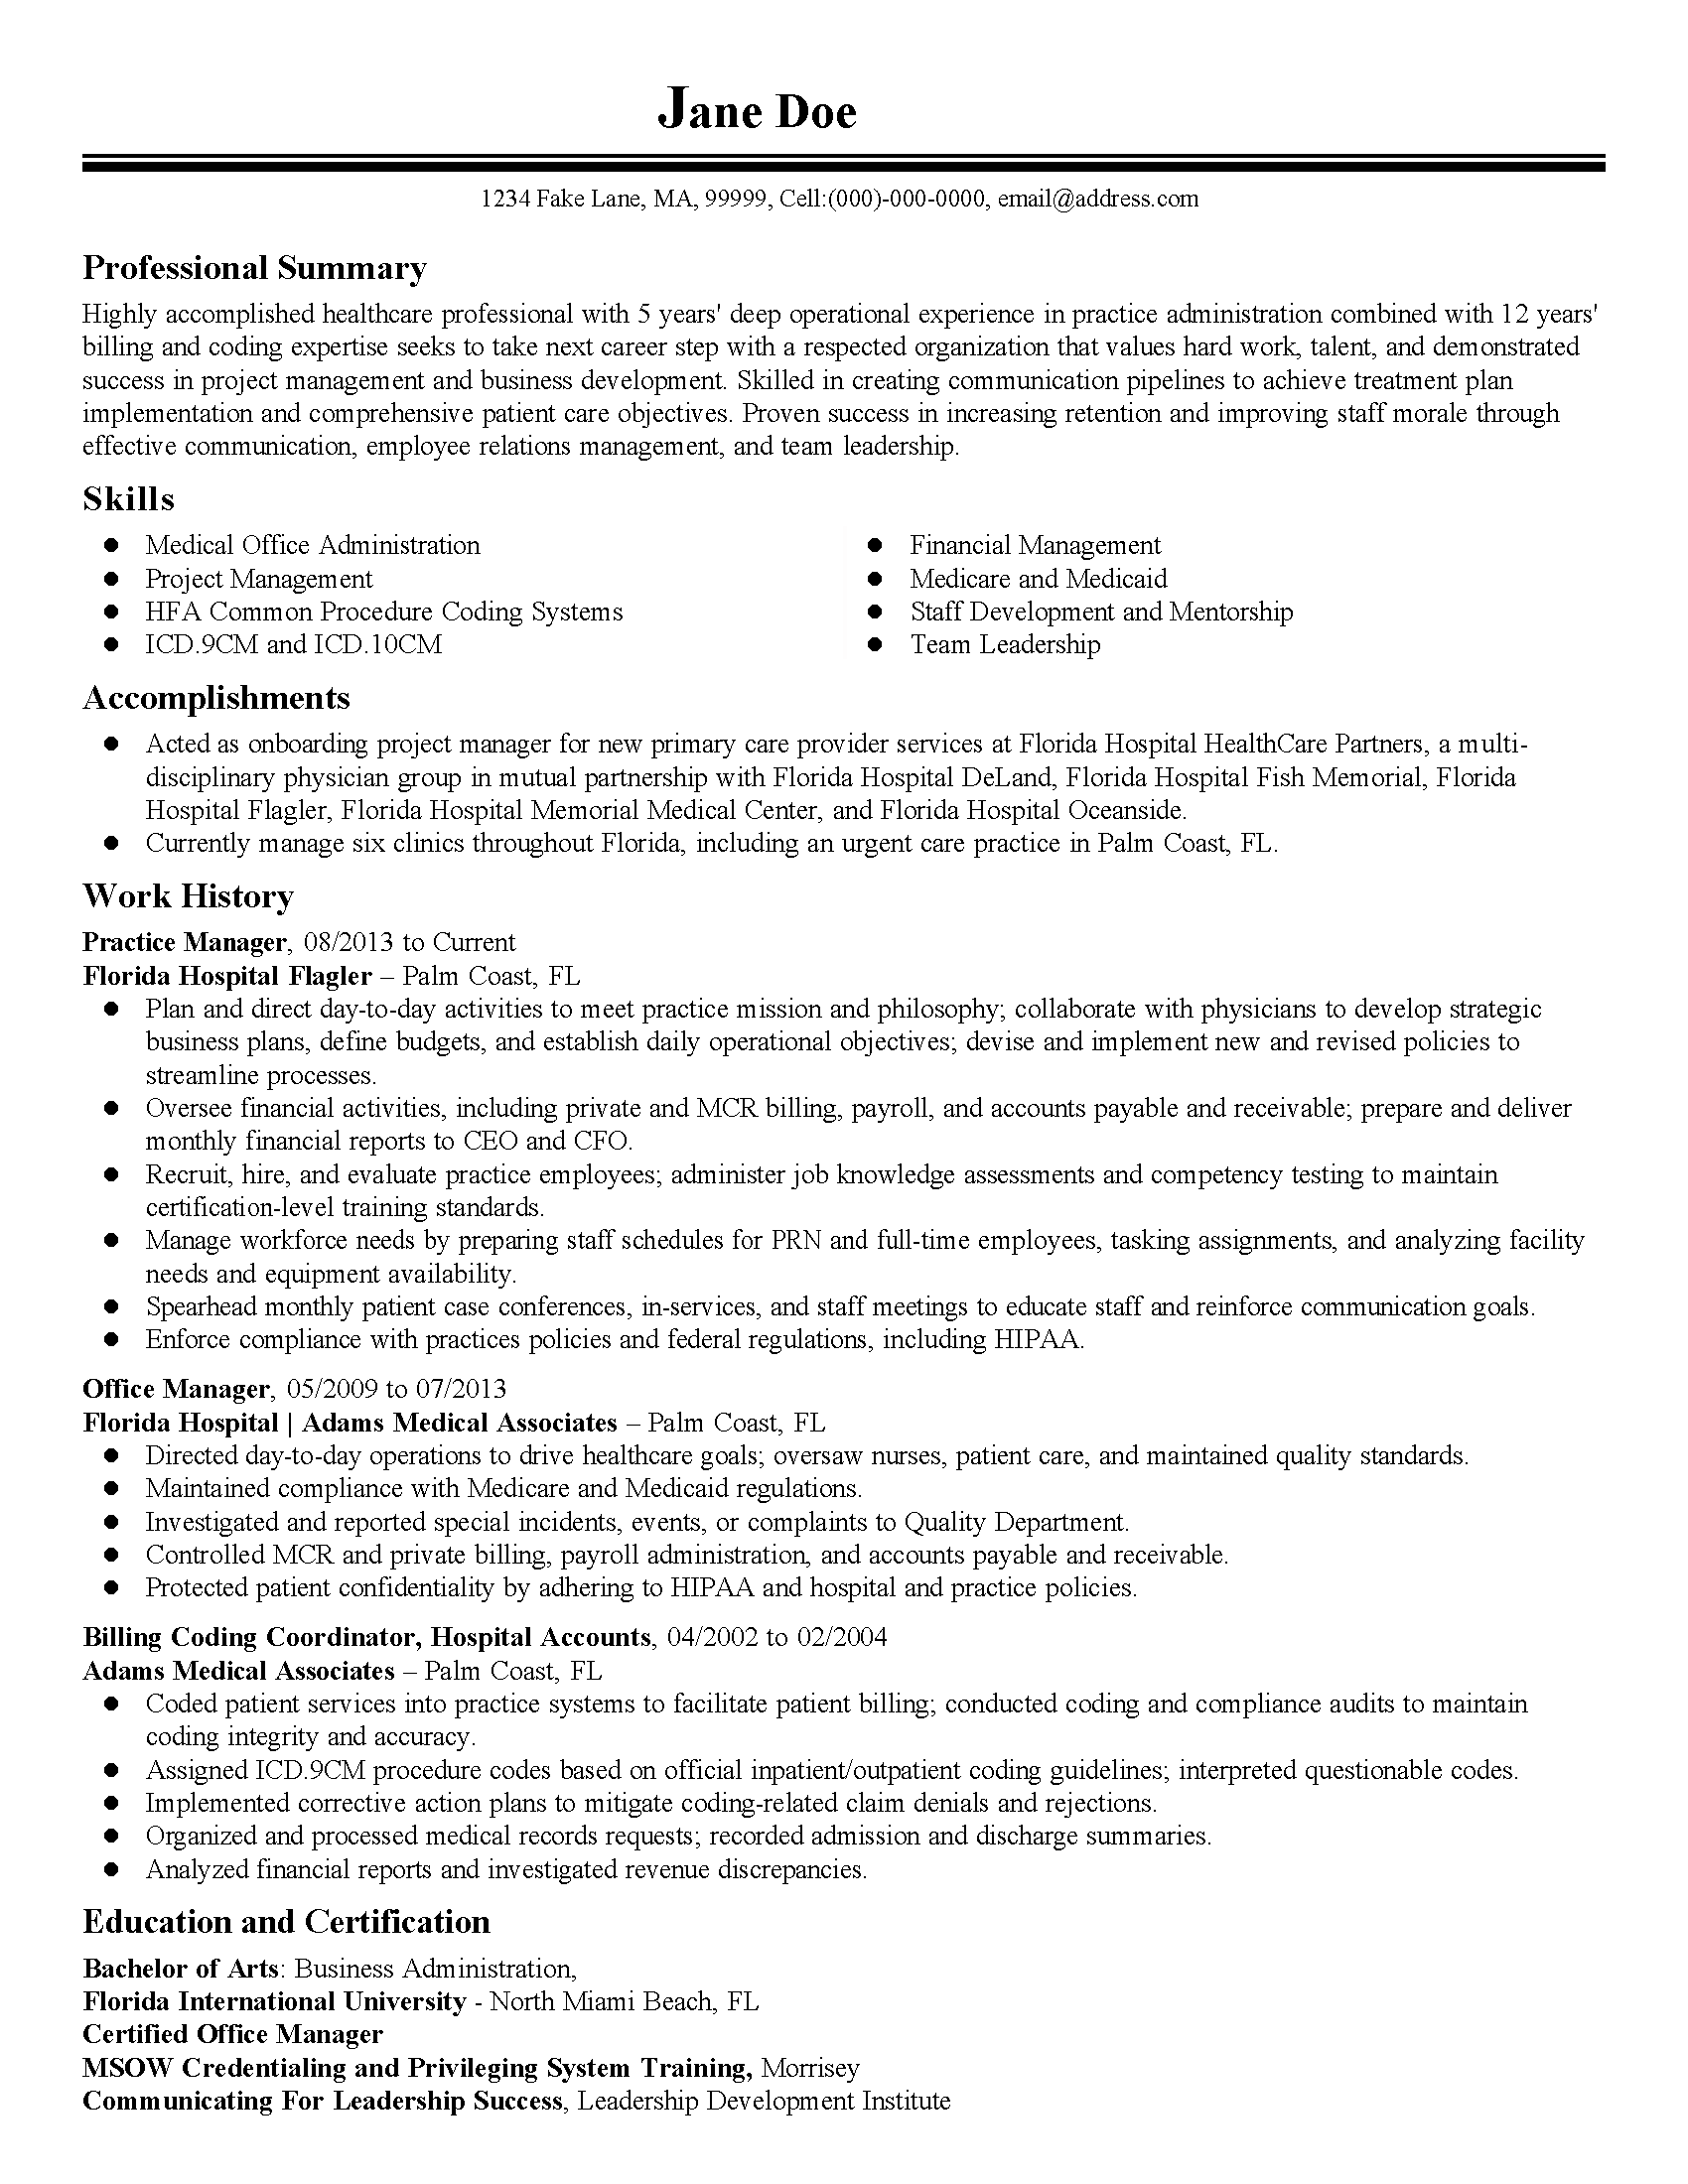 accomplishment report for ojt technicians Browse through 20+ free professionally designed resume templates to create a winning job application for the position you want.